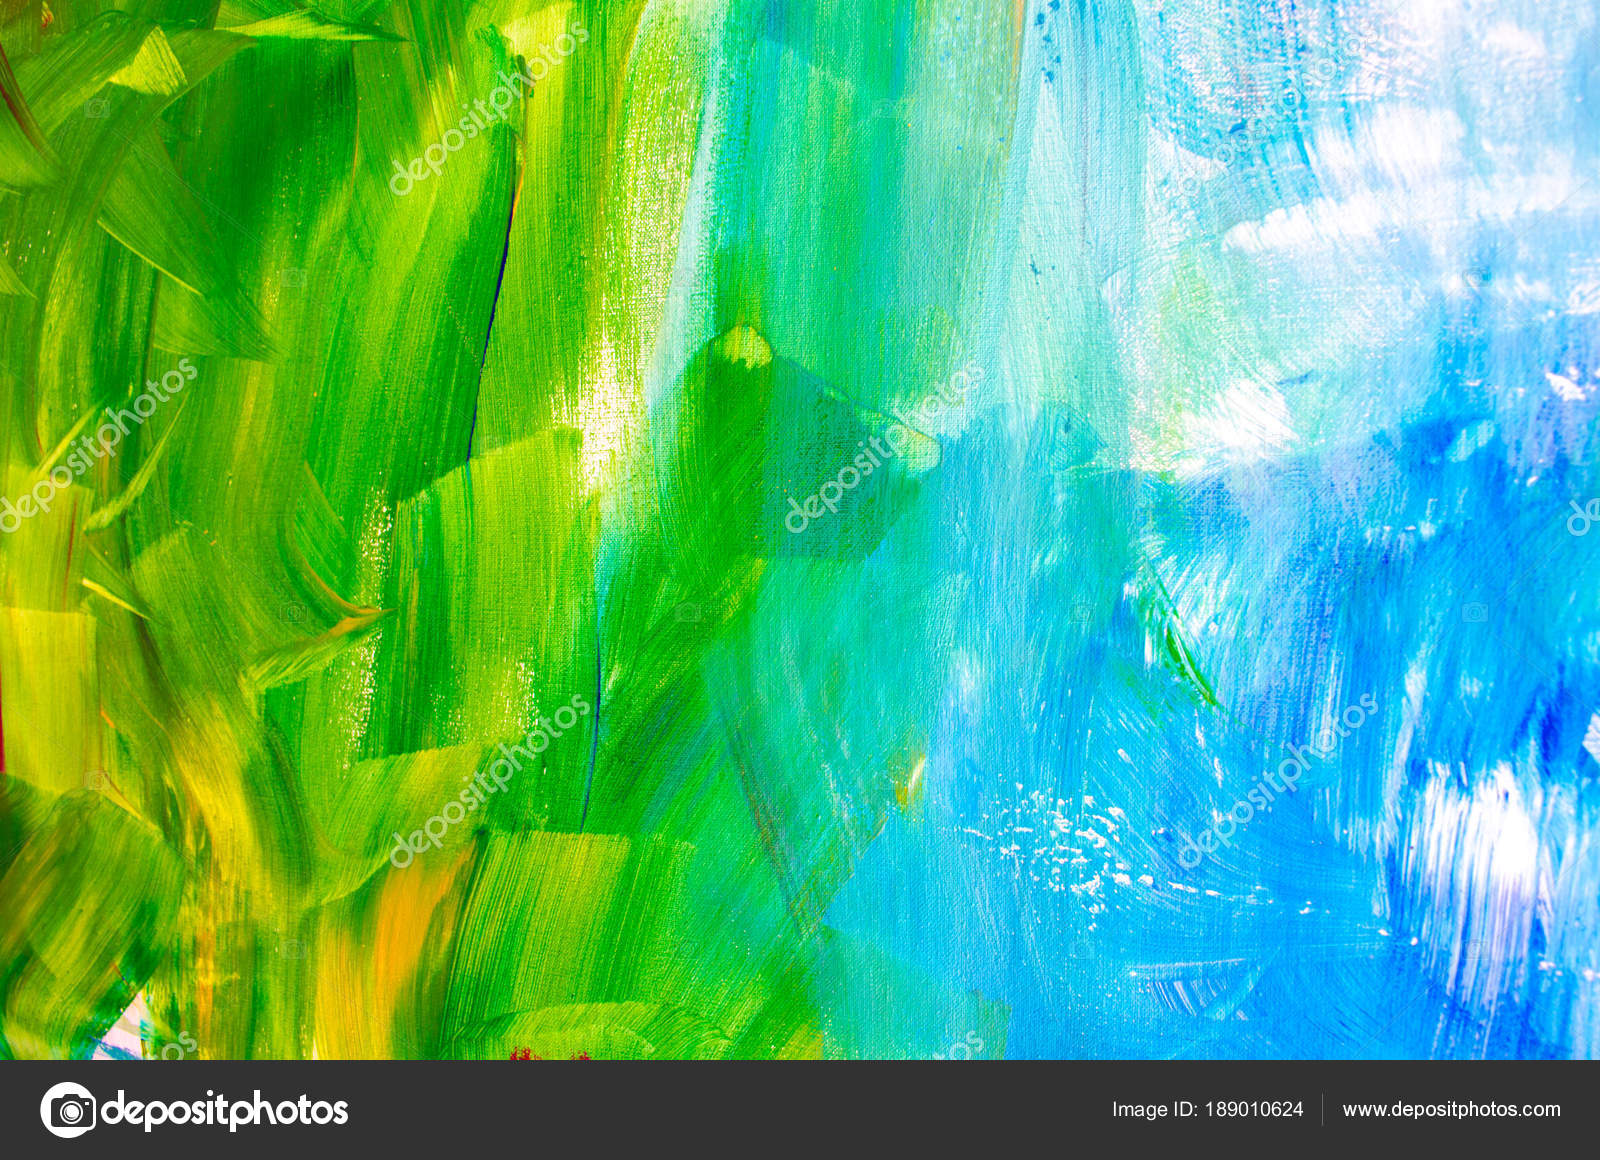 Textured abstract paintingAbstract art background Stock Photo